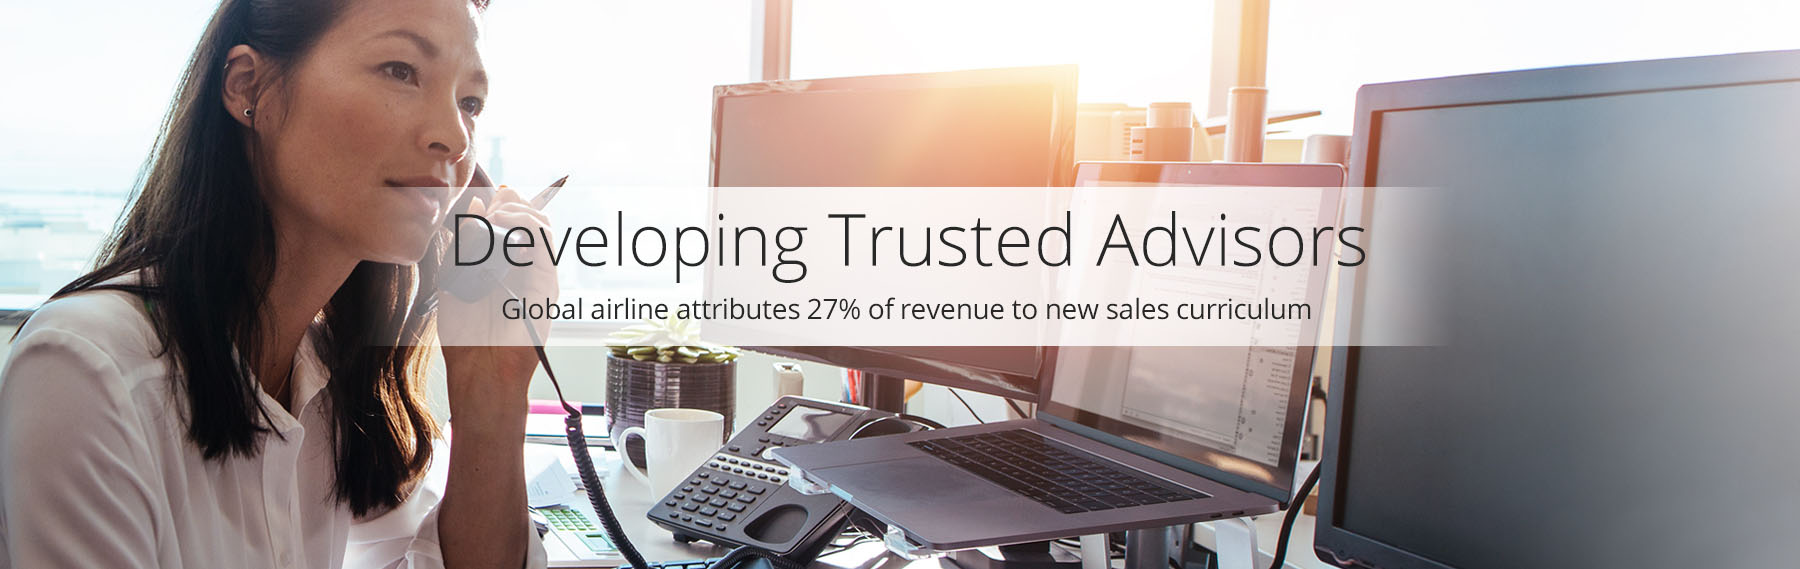 Developing Trusted Advisors